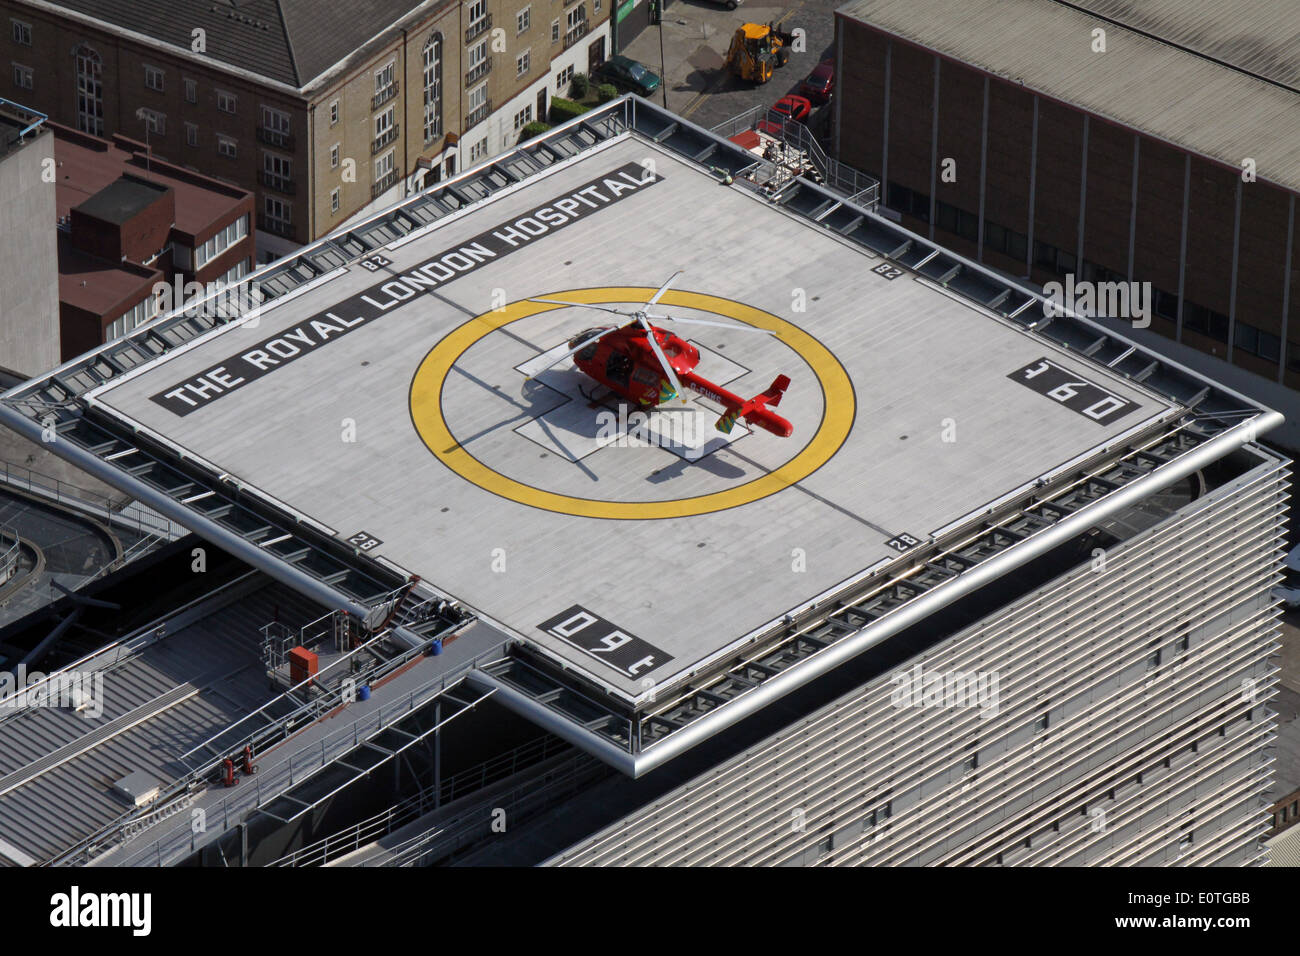 heli stock with Stock Photo The Emergency Heli Pad Hospital Helicopter Landing Pad On The Roof 69381183 on 1300mah 2s 74v 20c Lipo 18 Awg Ec2 Eflb13002s20 additionally T22552 Vertol H 21 C Banane Volante in addition Stock Photo The Emergency Heli Pad Hospital Helicopter Landing Pad On The Roof 69381183 moreover Lego Jungle Cargo Helicopter Set 60158 also Display Product.